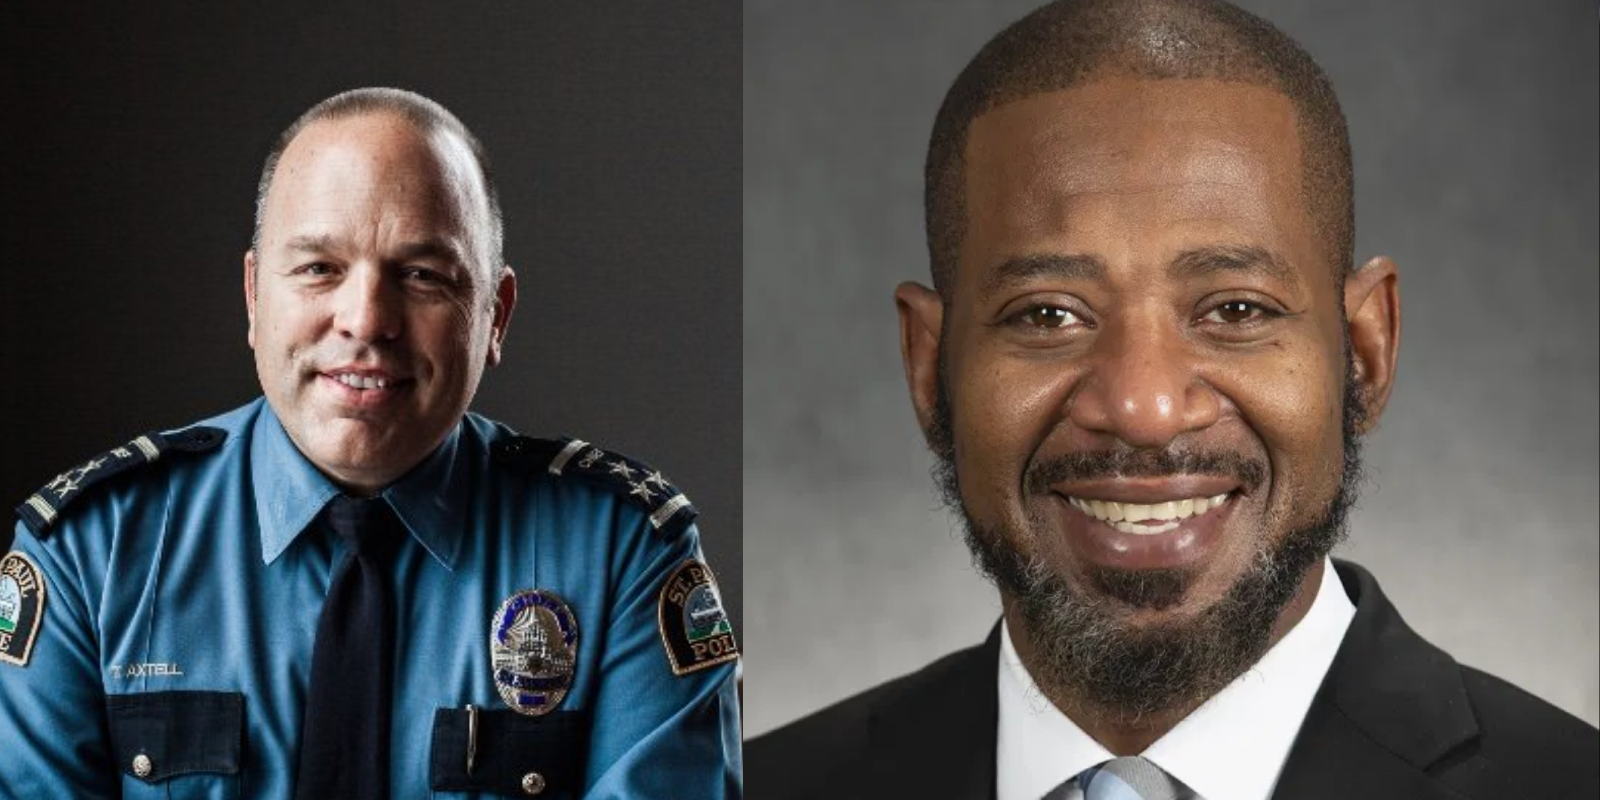 Police chief demands apology from Democrat state rep who made false accusation of racial profiling